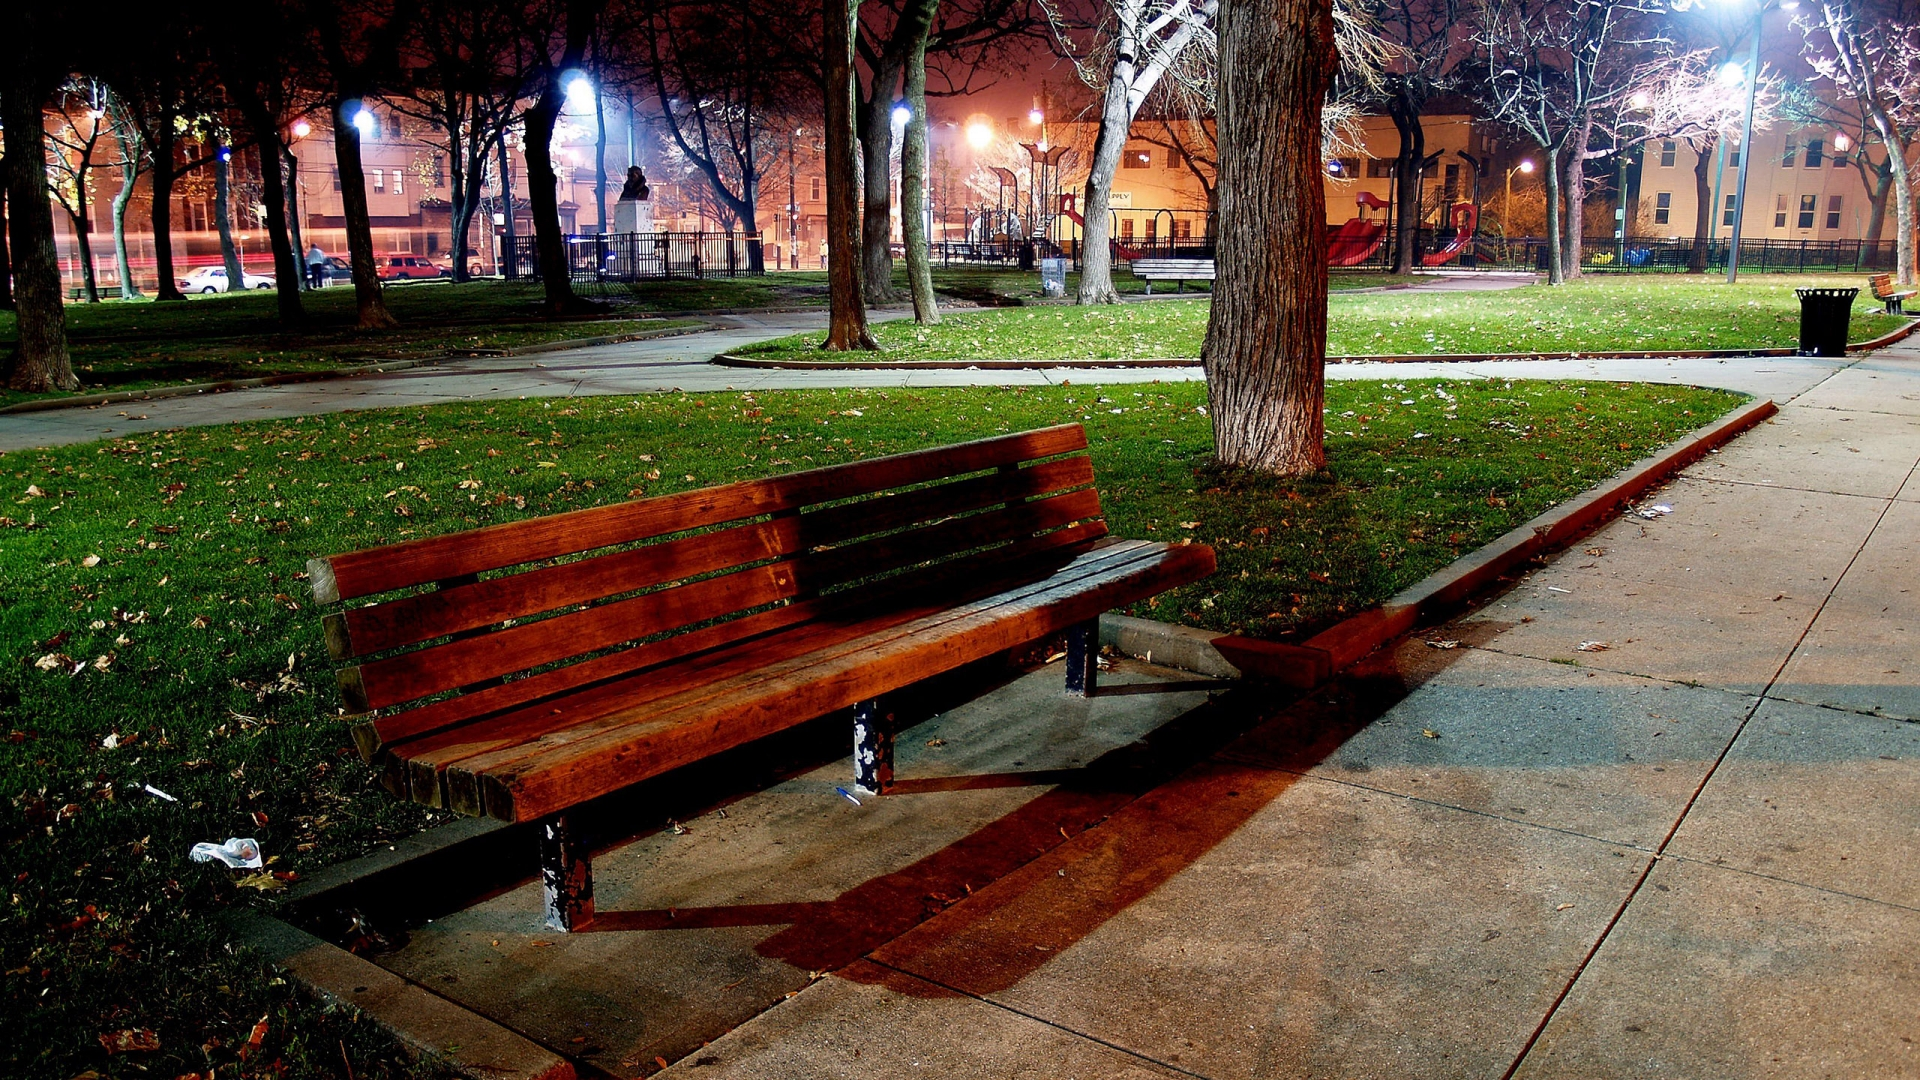 Park bench wallpaper - HD Wallpapers